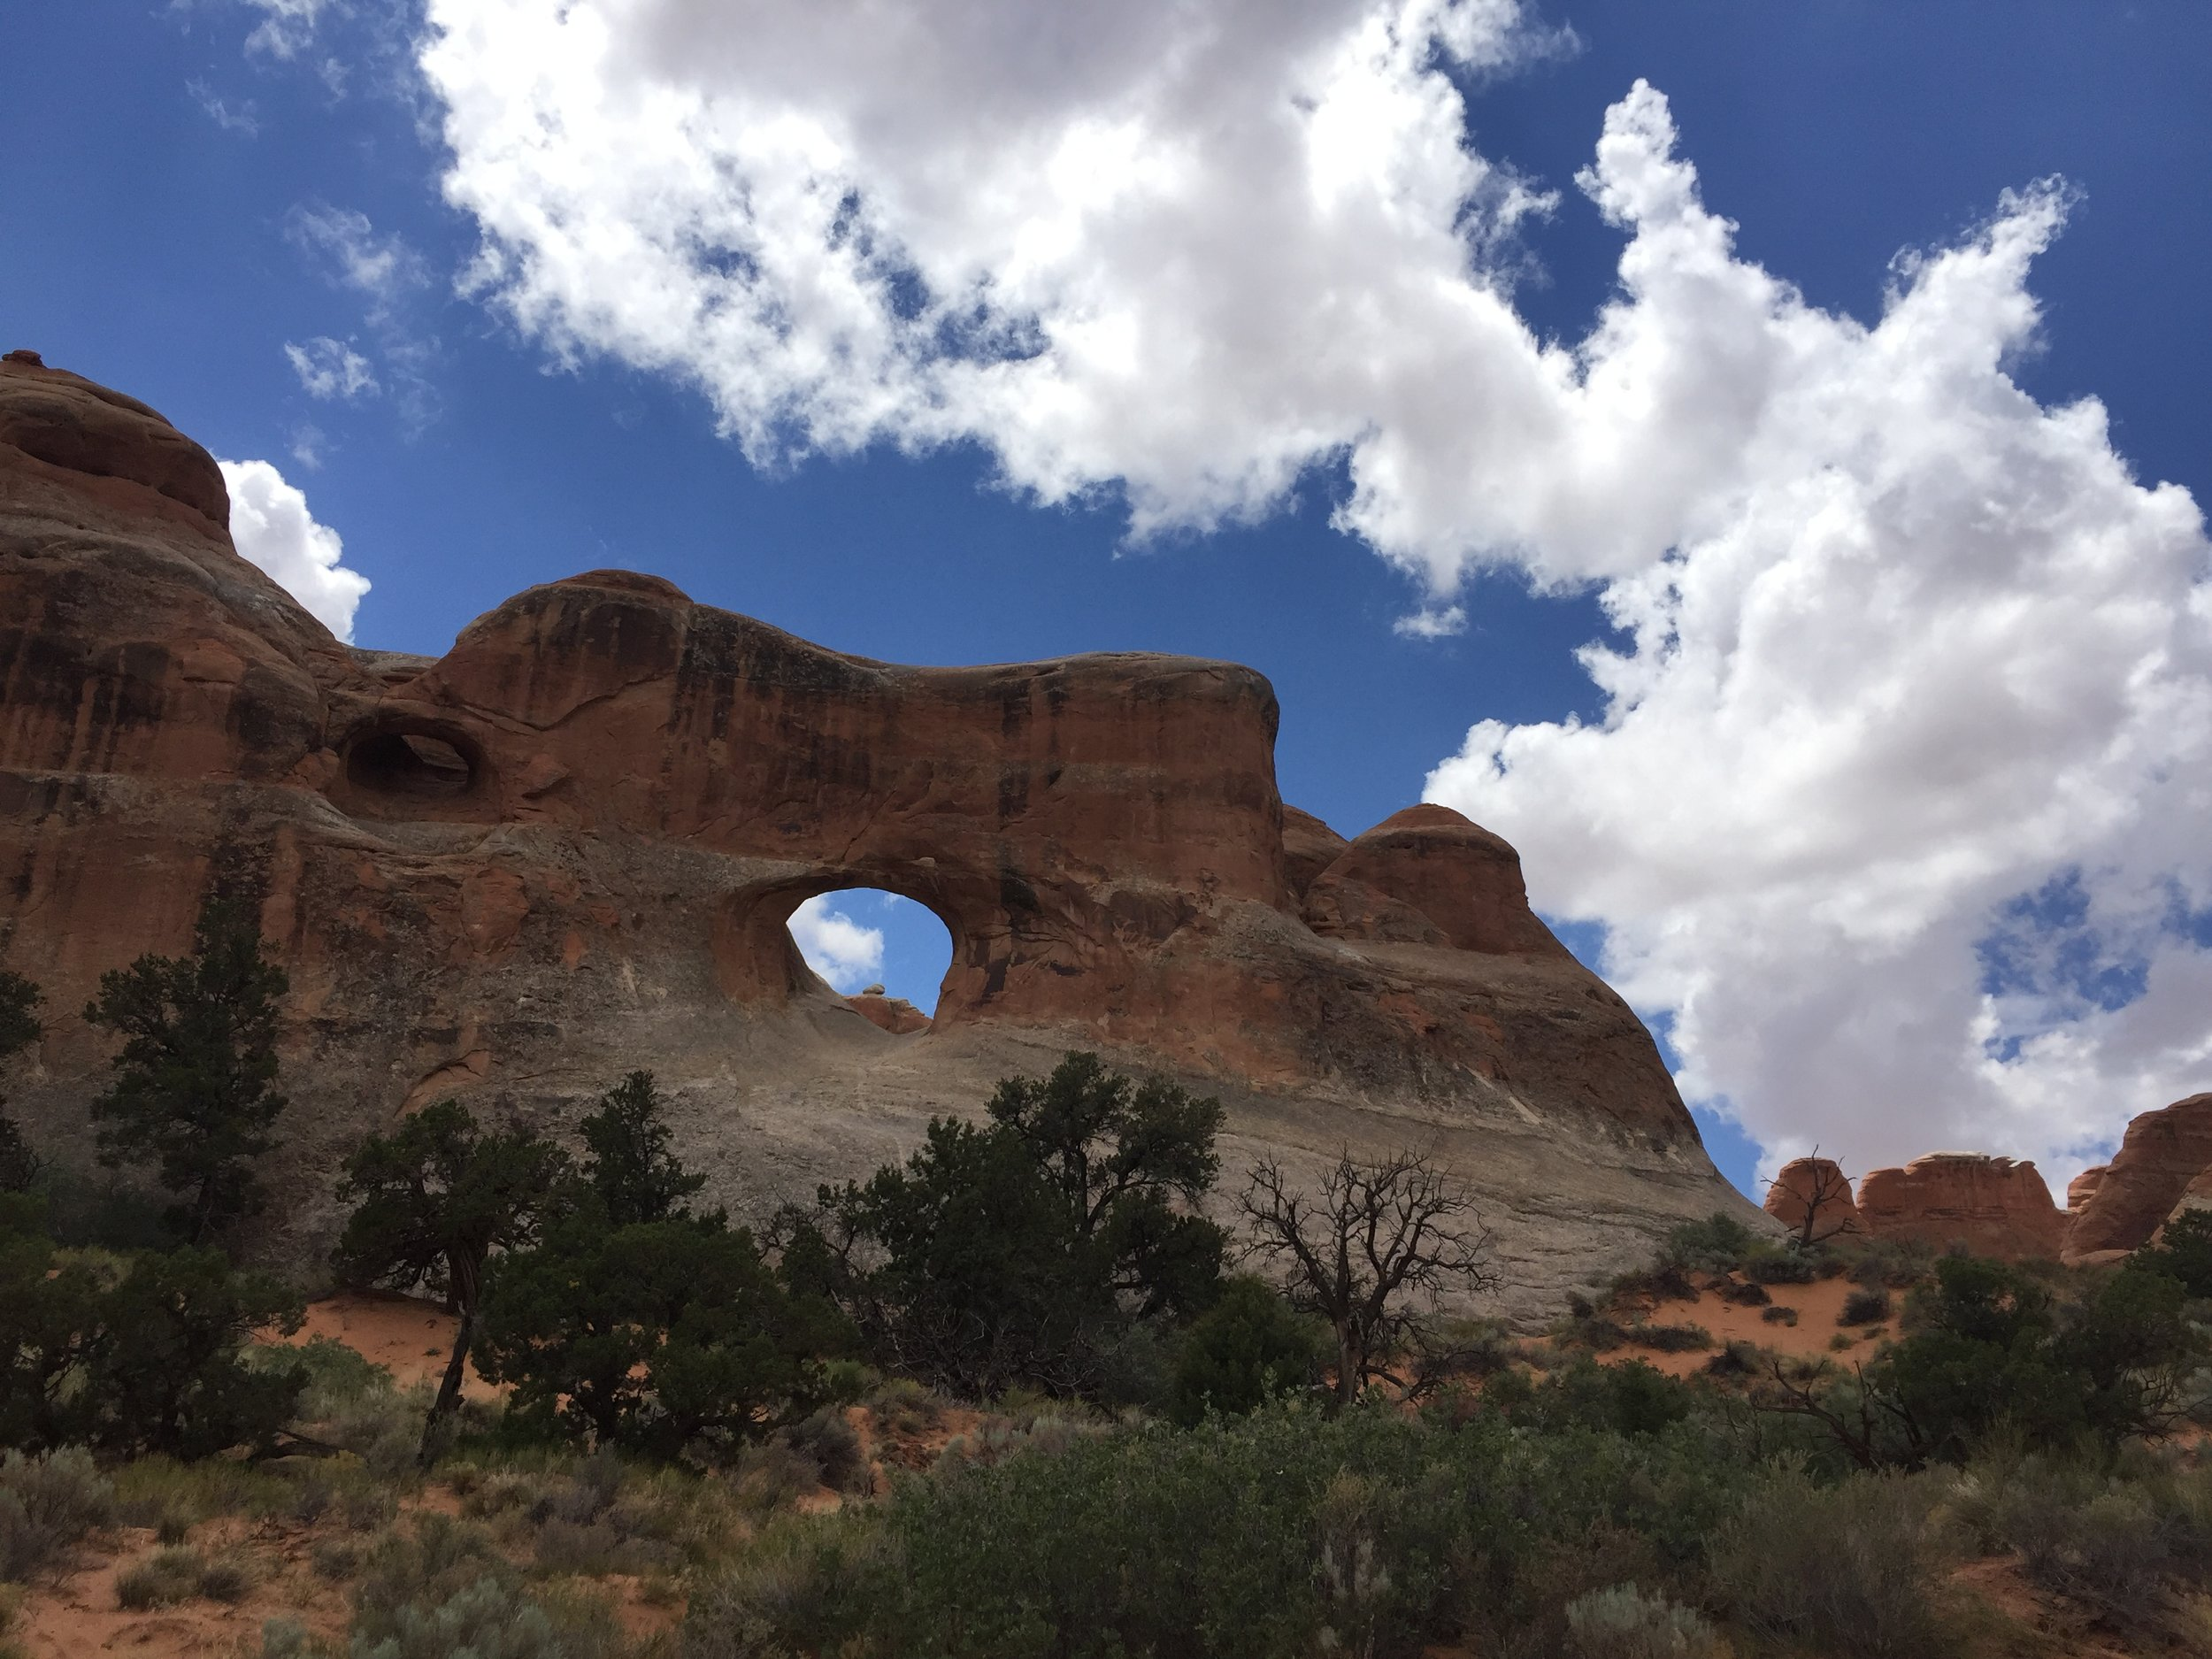 The original formation which I believe is a Window Arch.